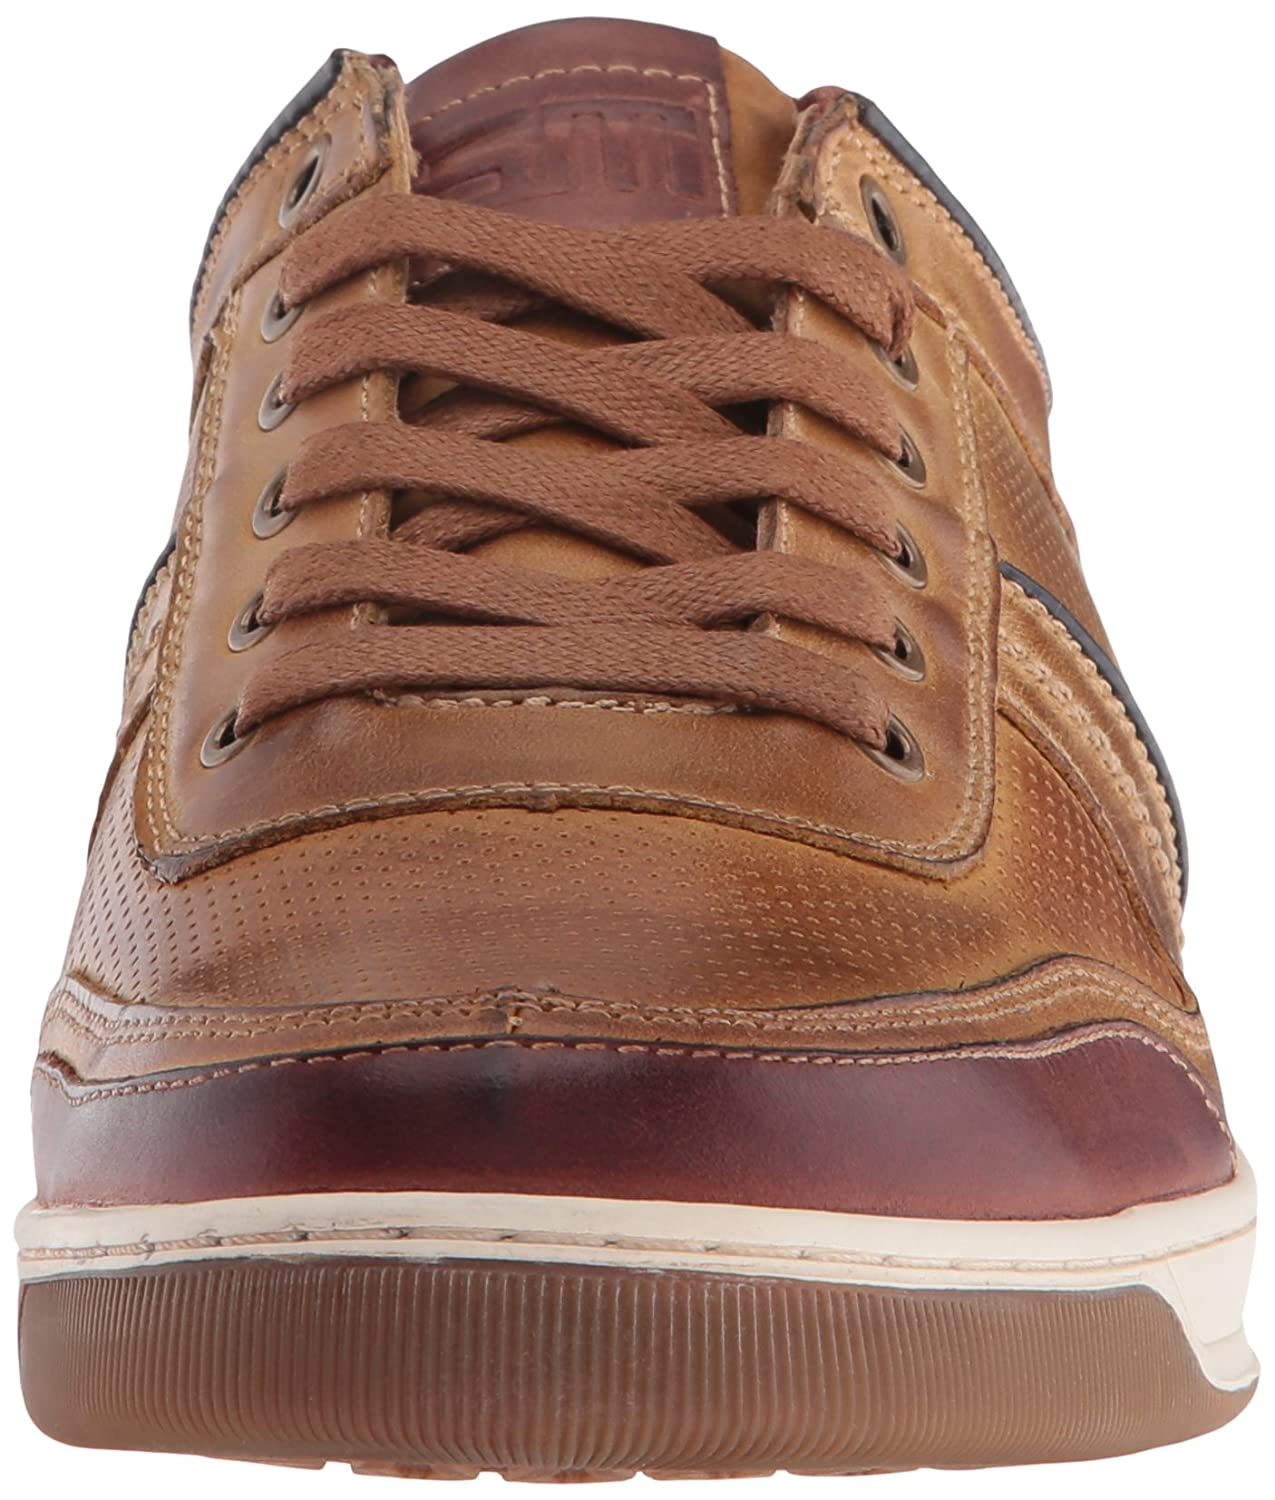 Amazon.com | Steve Madden Men's Cantor Fashion Sneaker | Fashion Sneakers